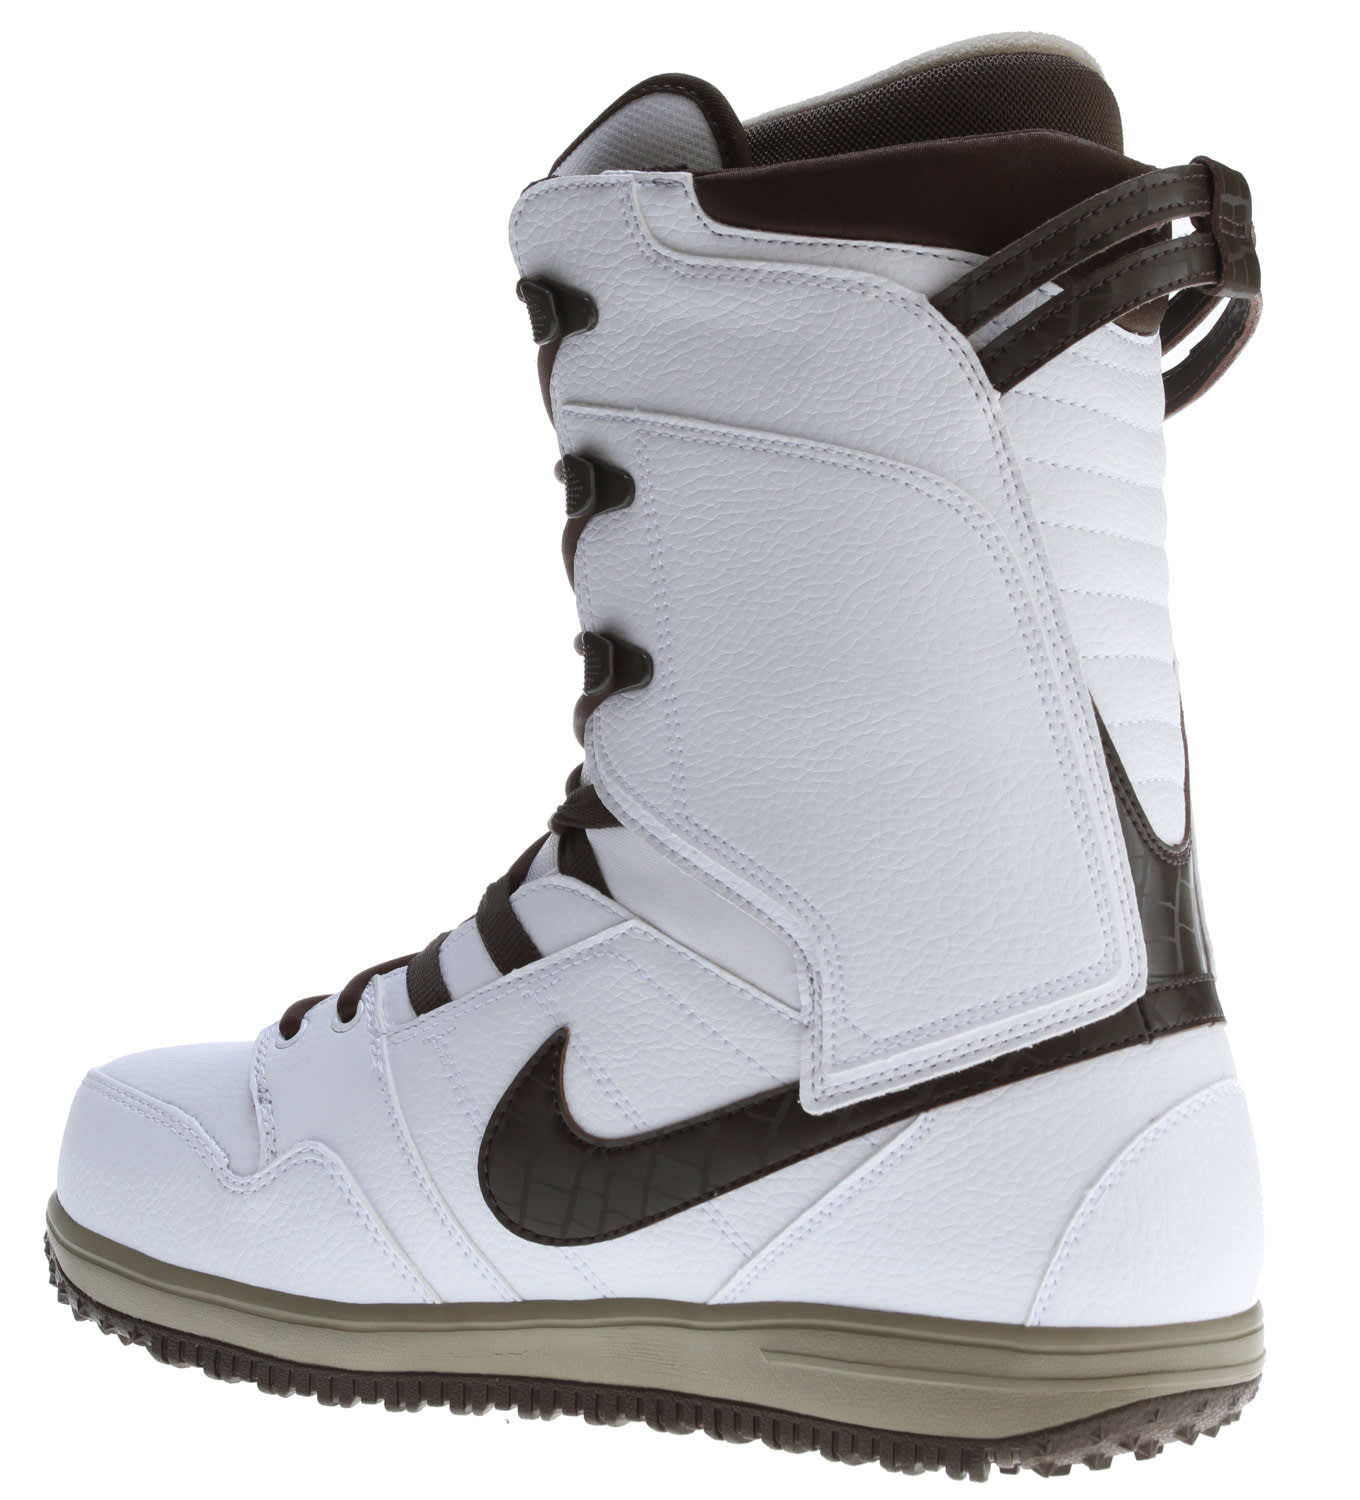 On Sale Nike Vapen Snowboard Boots Up To 60 Off